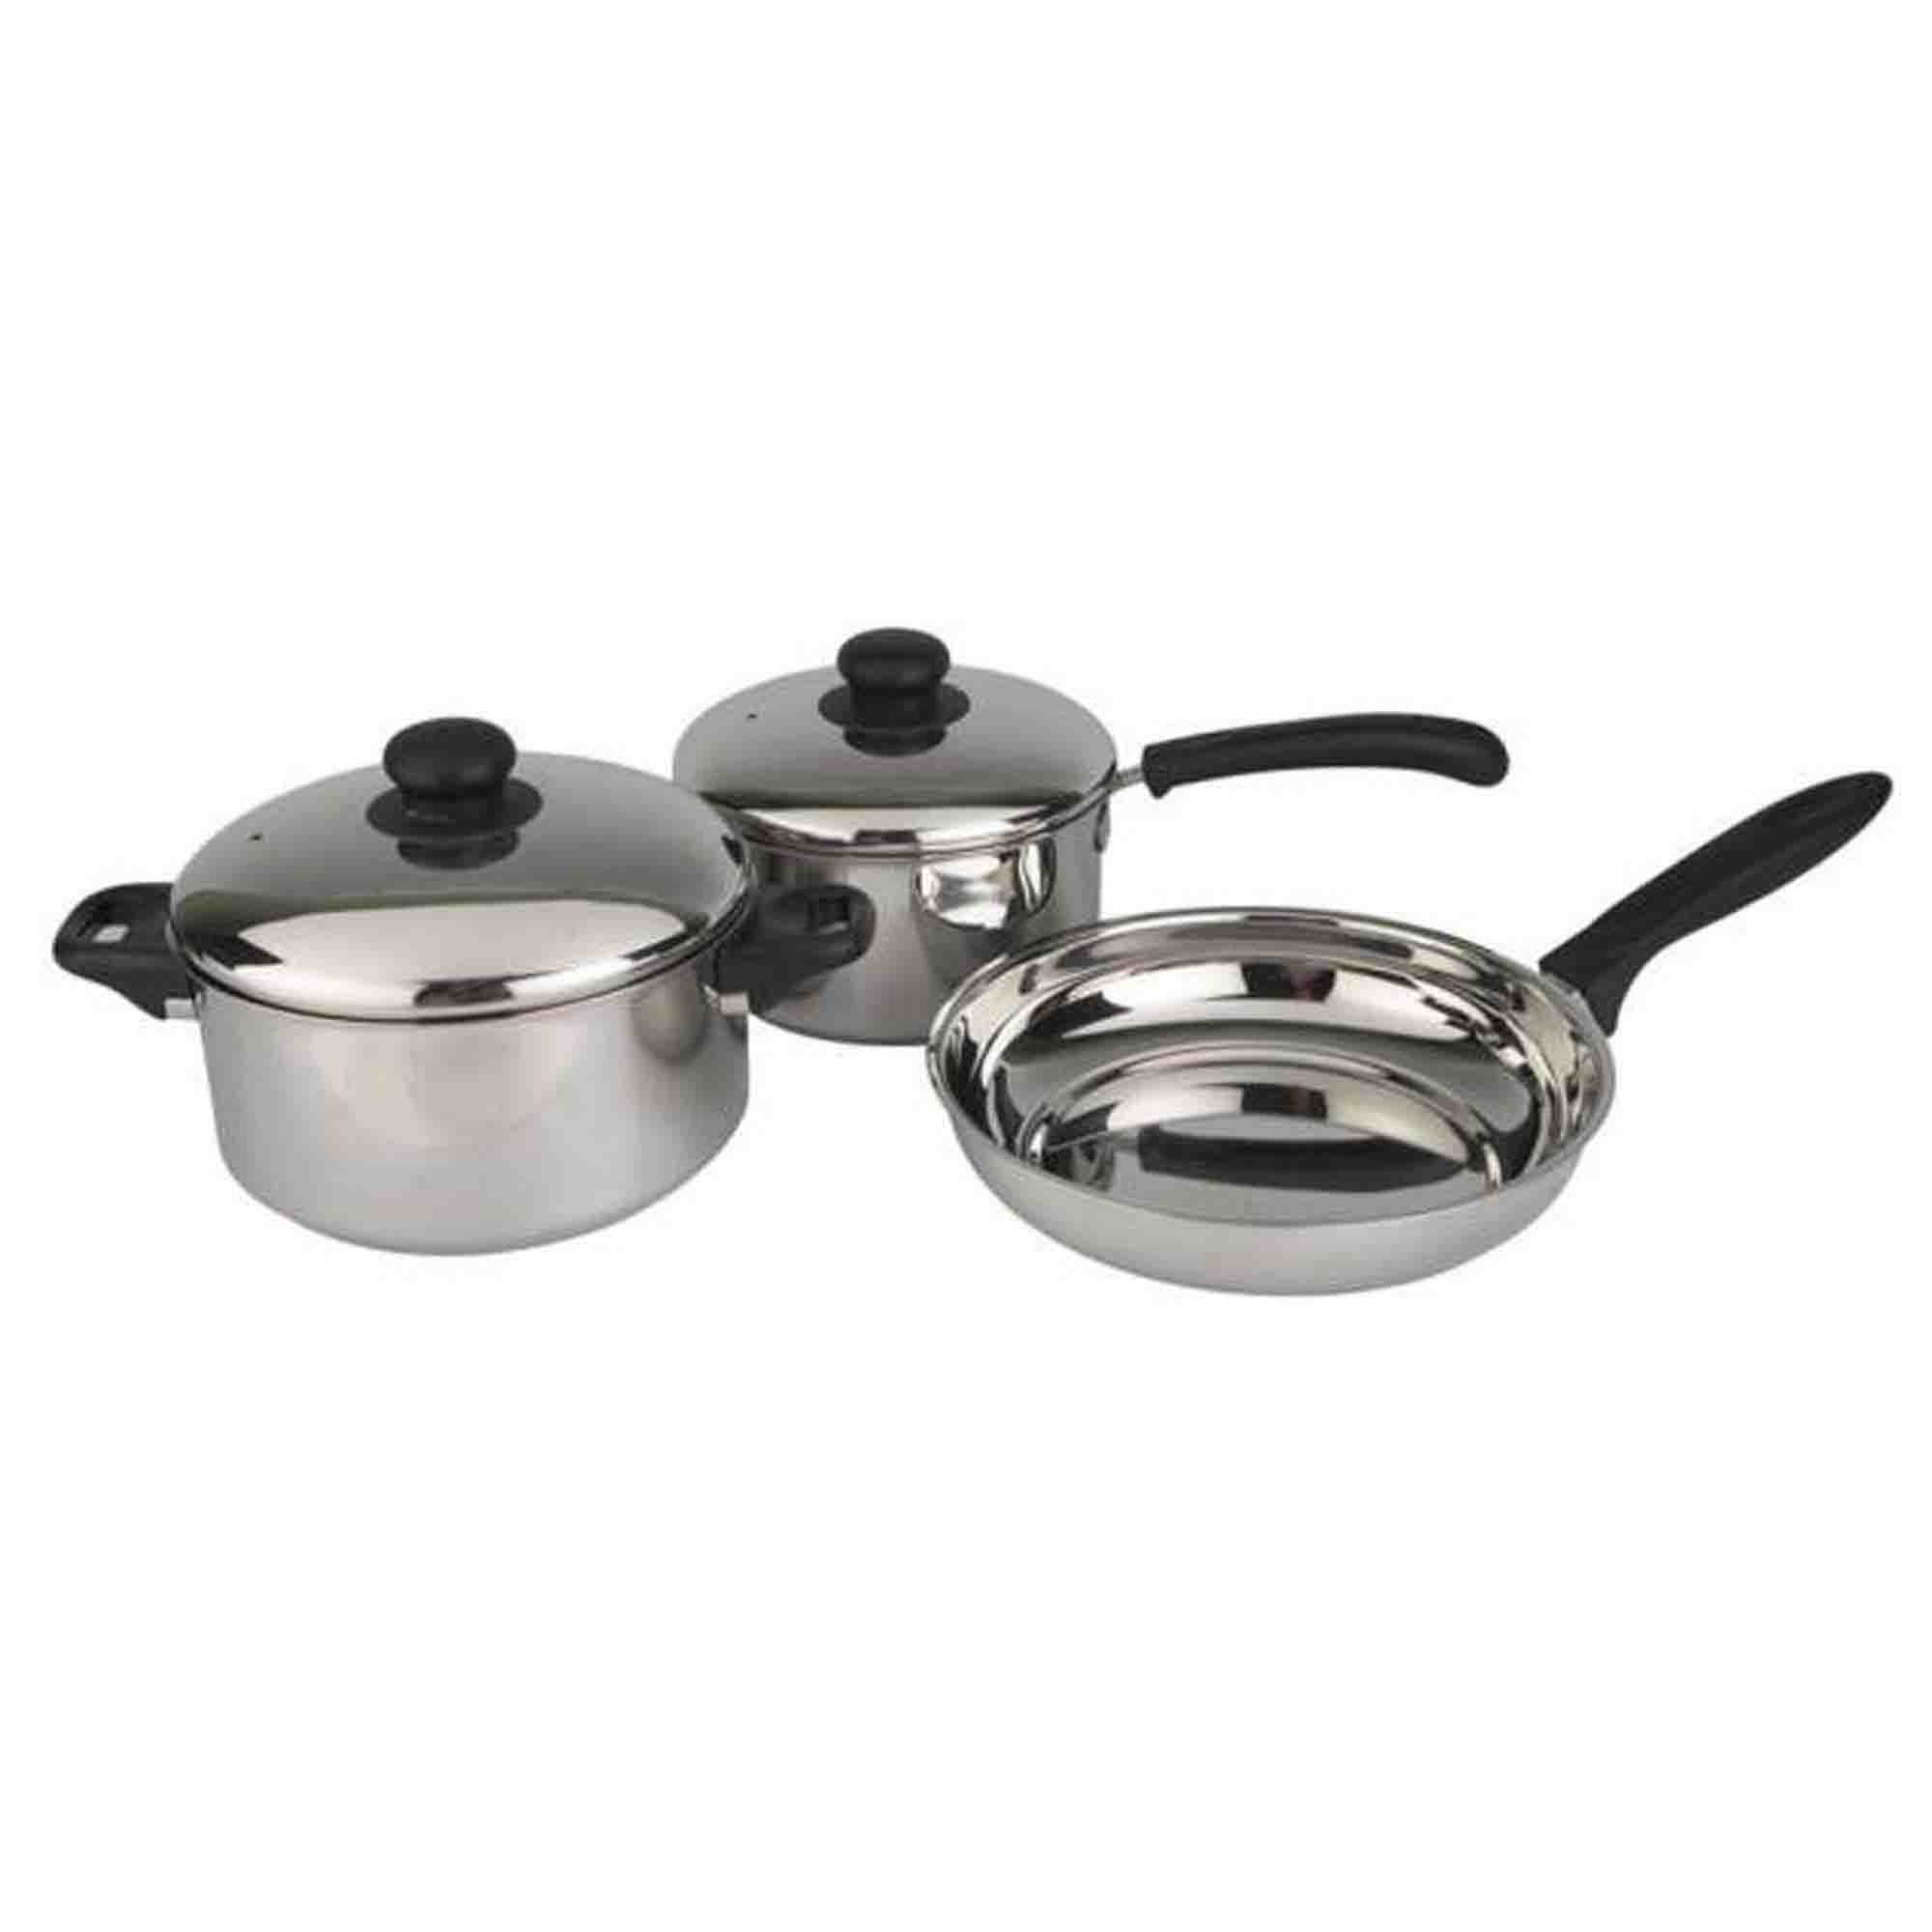 SAIL SALEM 3 Piece Sauce Pan & Fry Pan Set